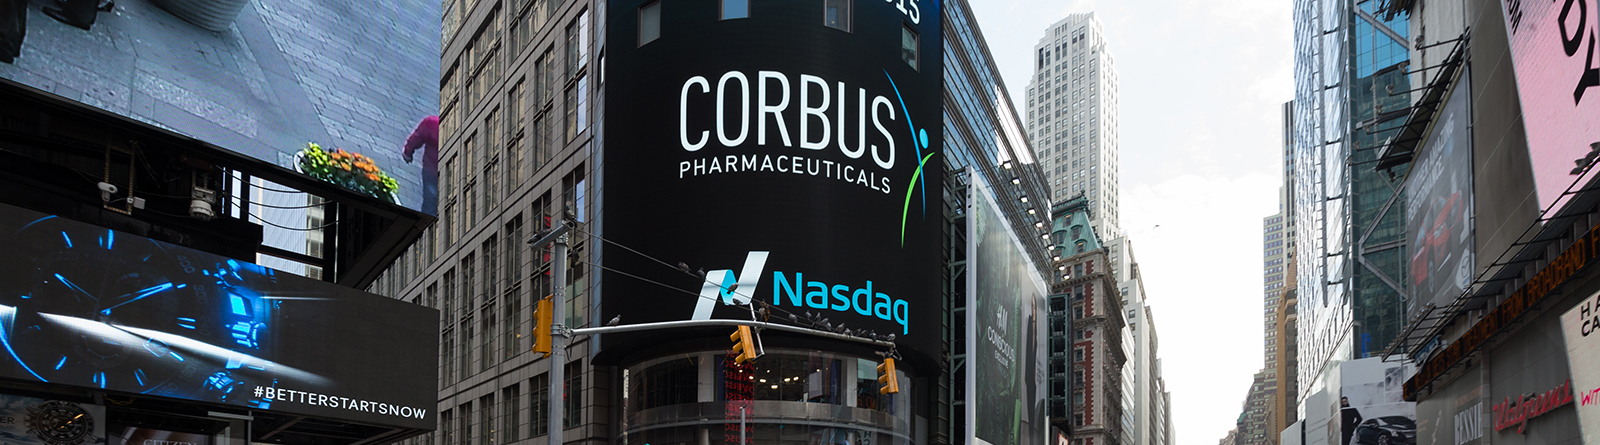 Corbus Pharmaceuticals Completes Enrollment of RESOLVE-1 Phase 3 Study of Lenabasum for Treatment of Systemic Sclerosis Banner